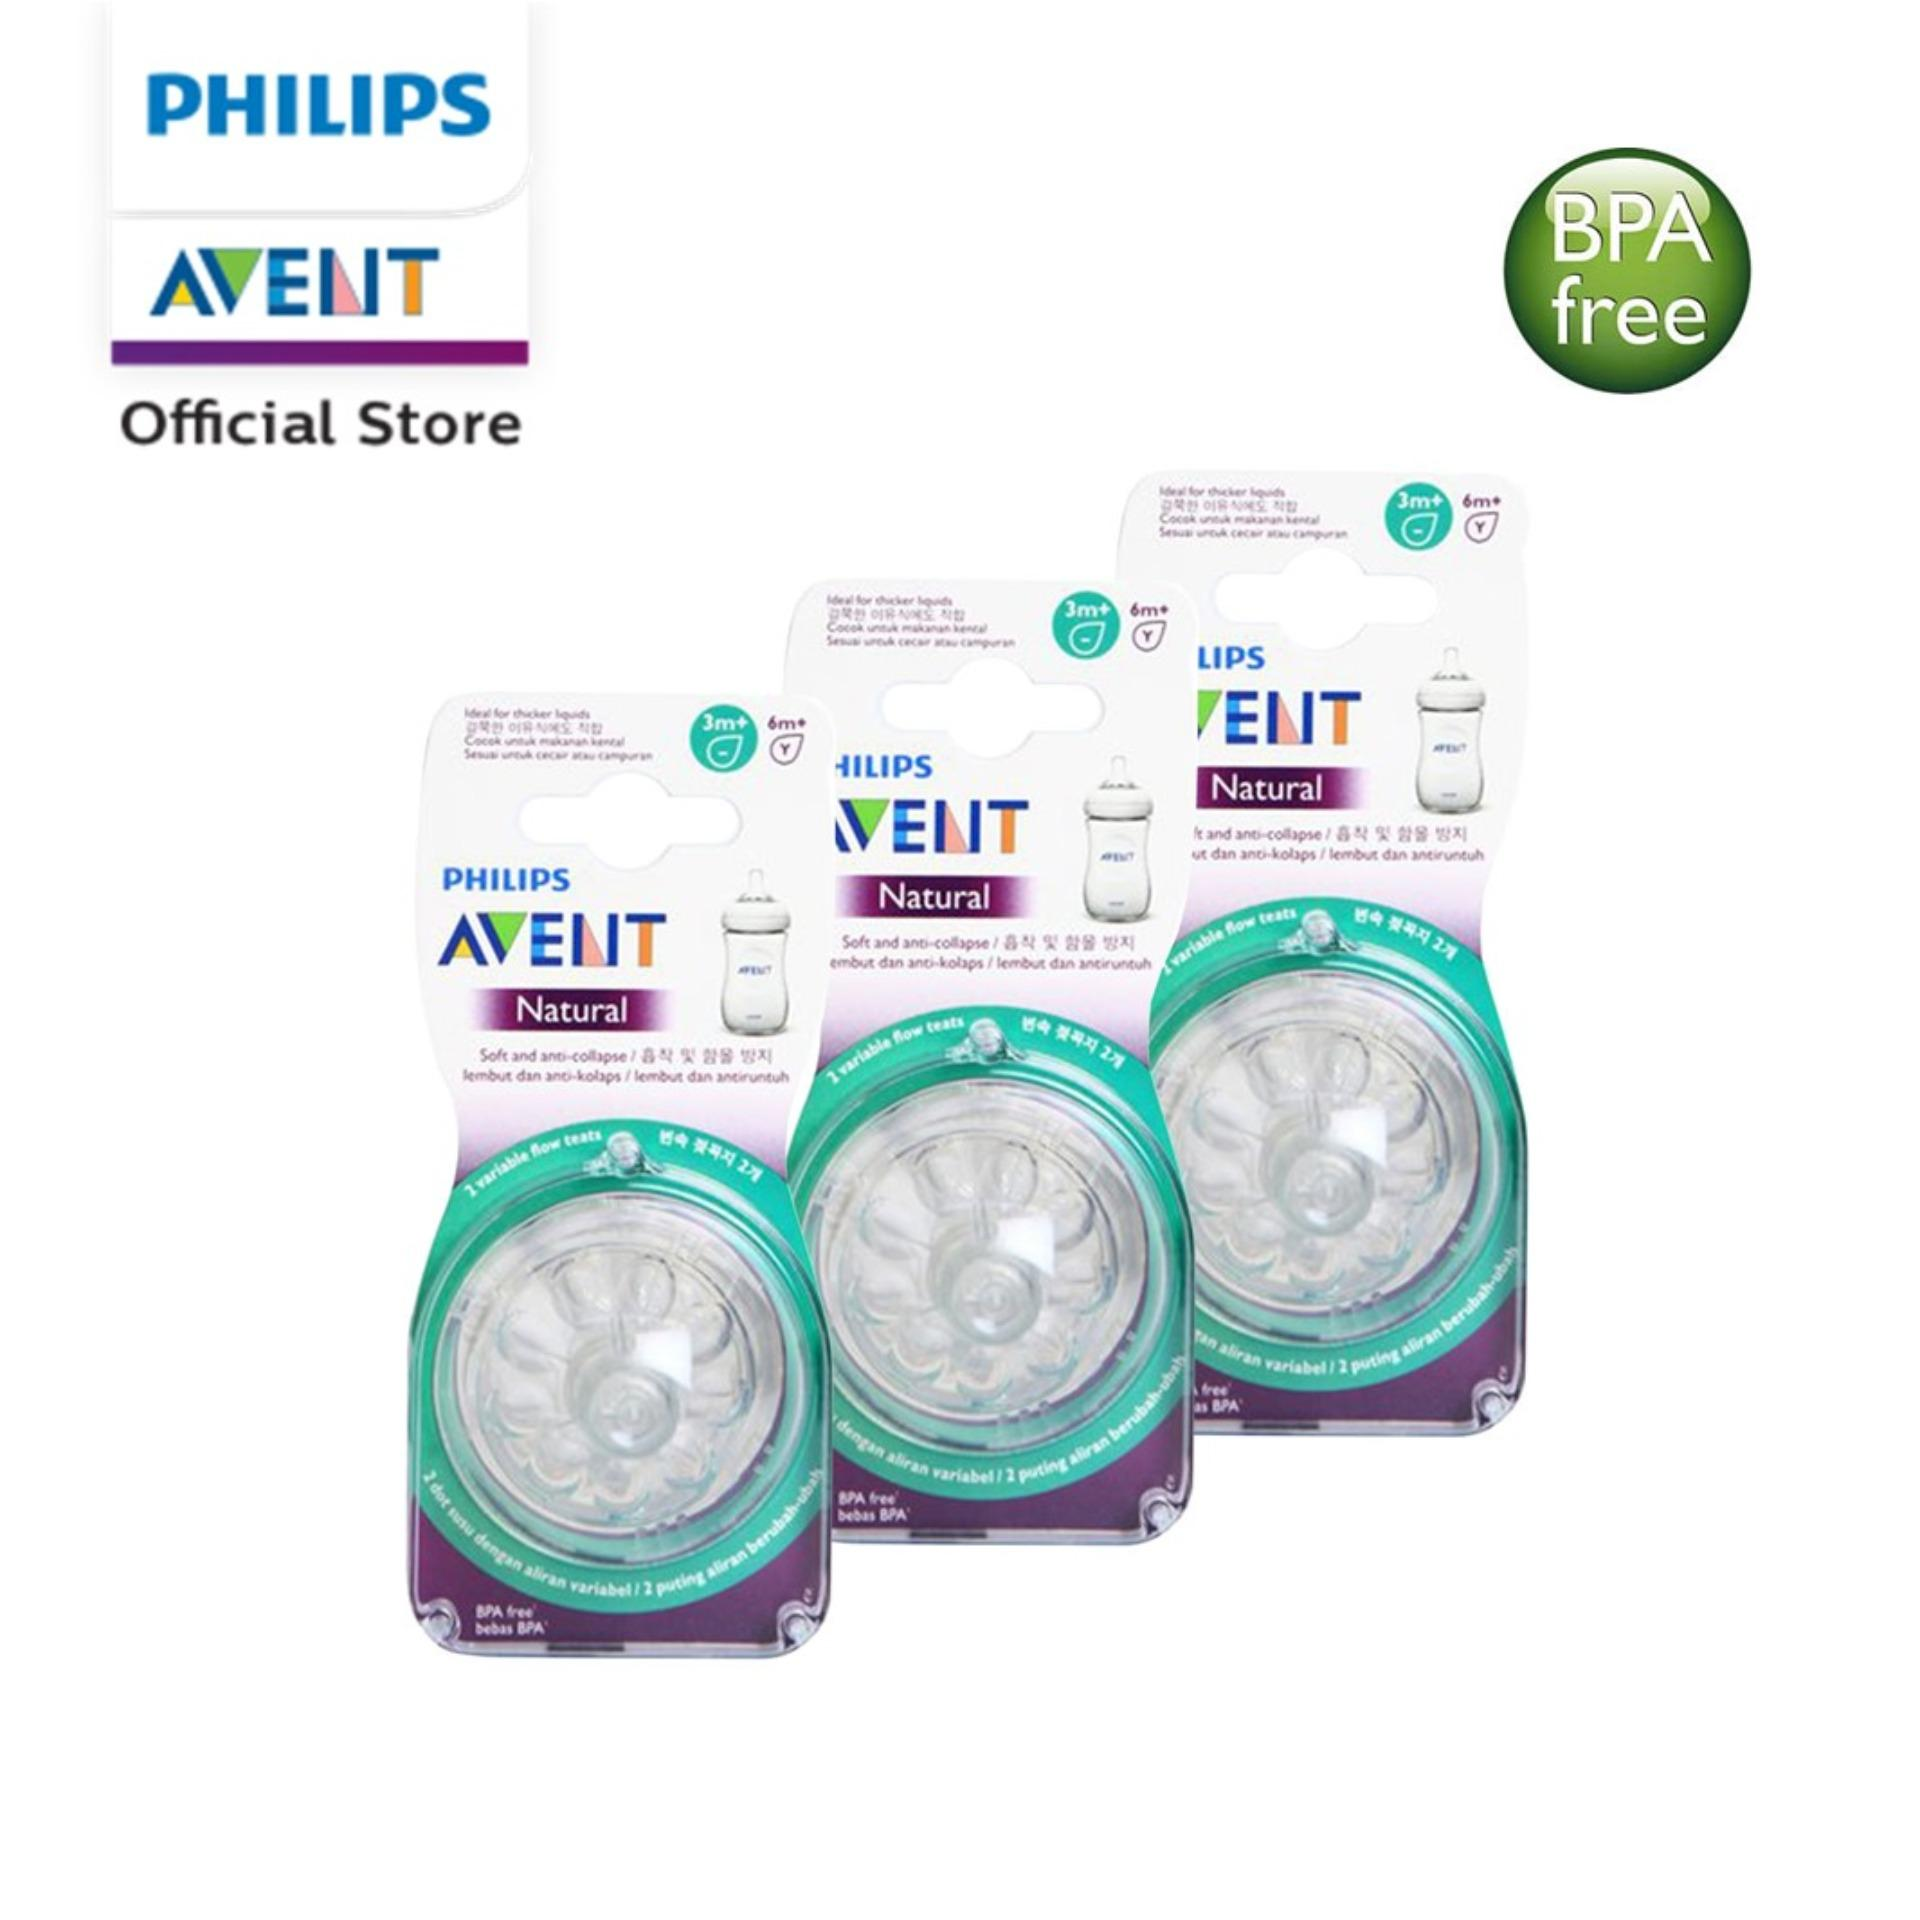 Philips Avent Natural teats variable flow 3m+ (2pcs / pack X 3packs)